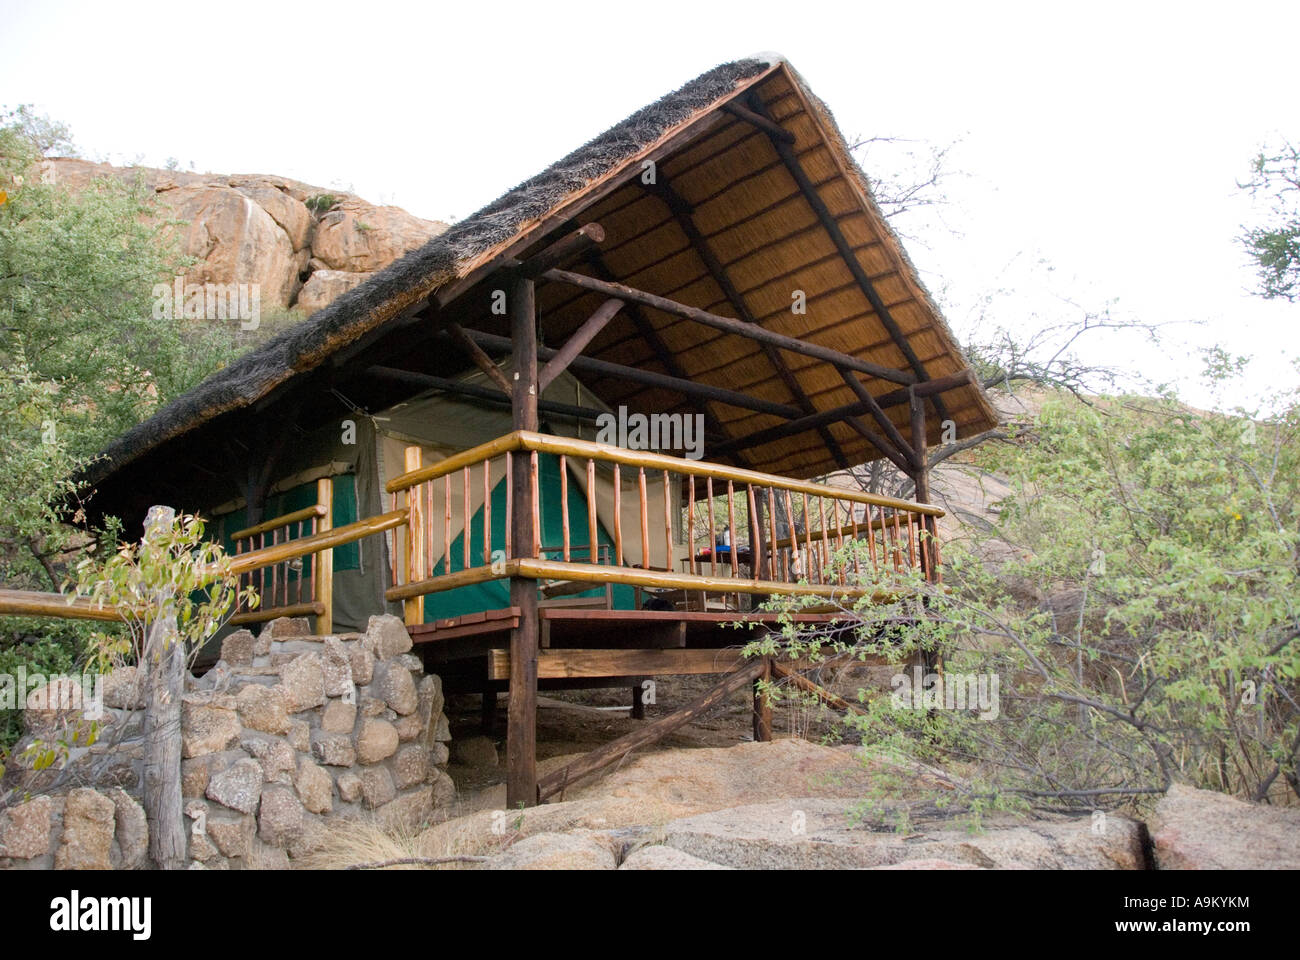 Thatched roof chalet tent at Erongo Wilderness Lodge guest farm in Namibia & Thatched roof chalet tent at Erongo Wilderness Lodge guest farm in ...